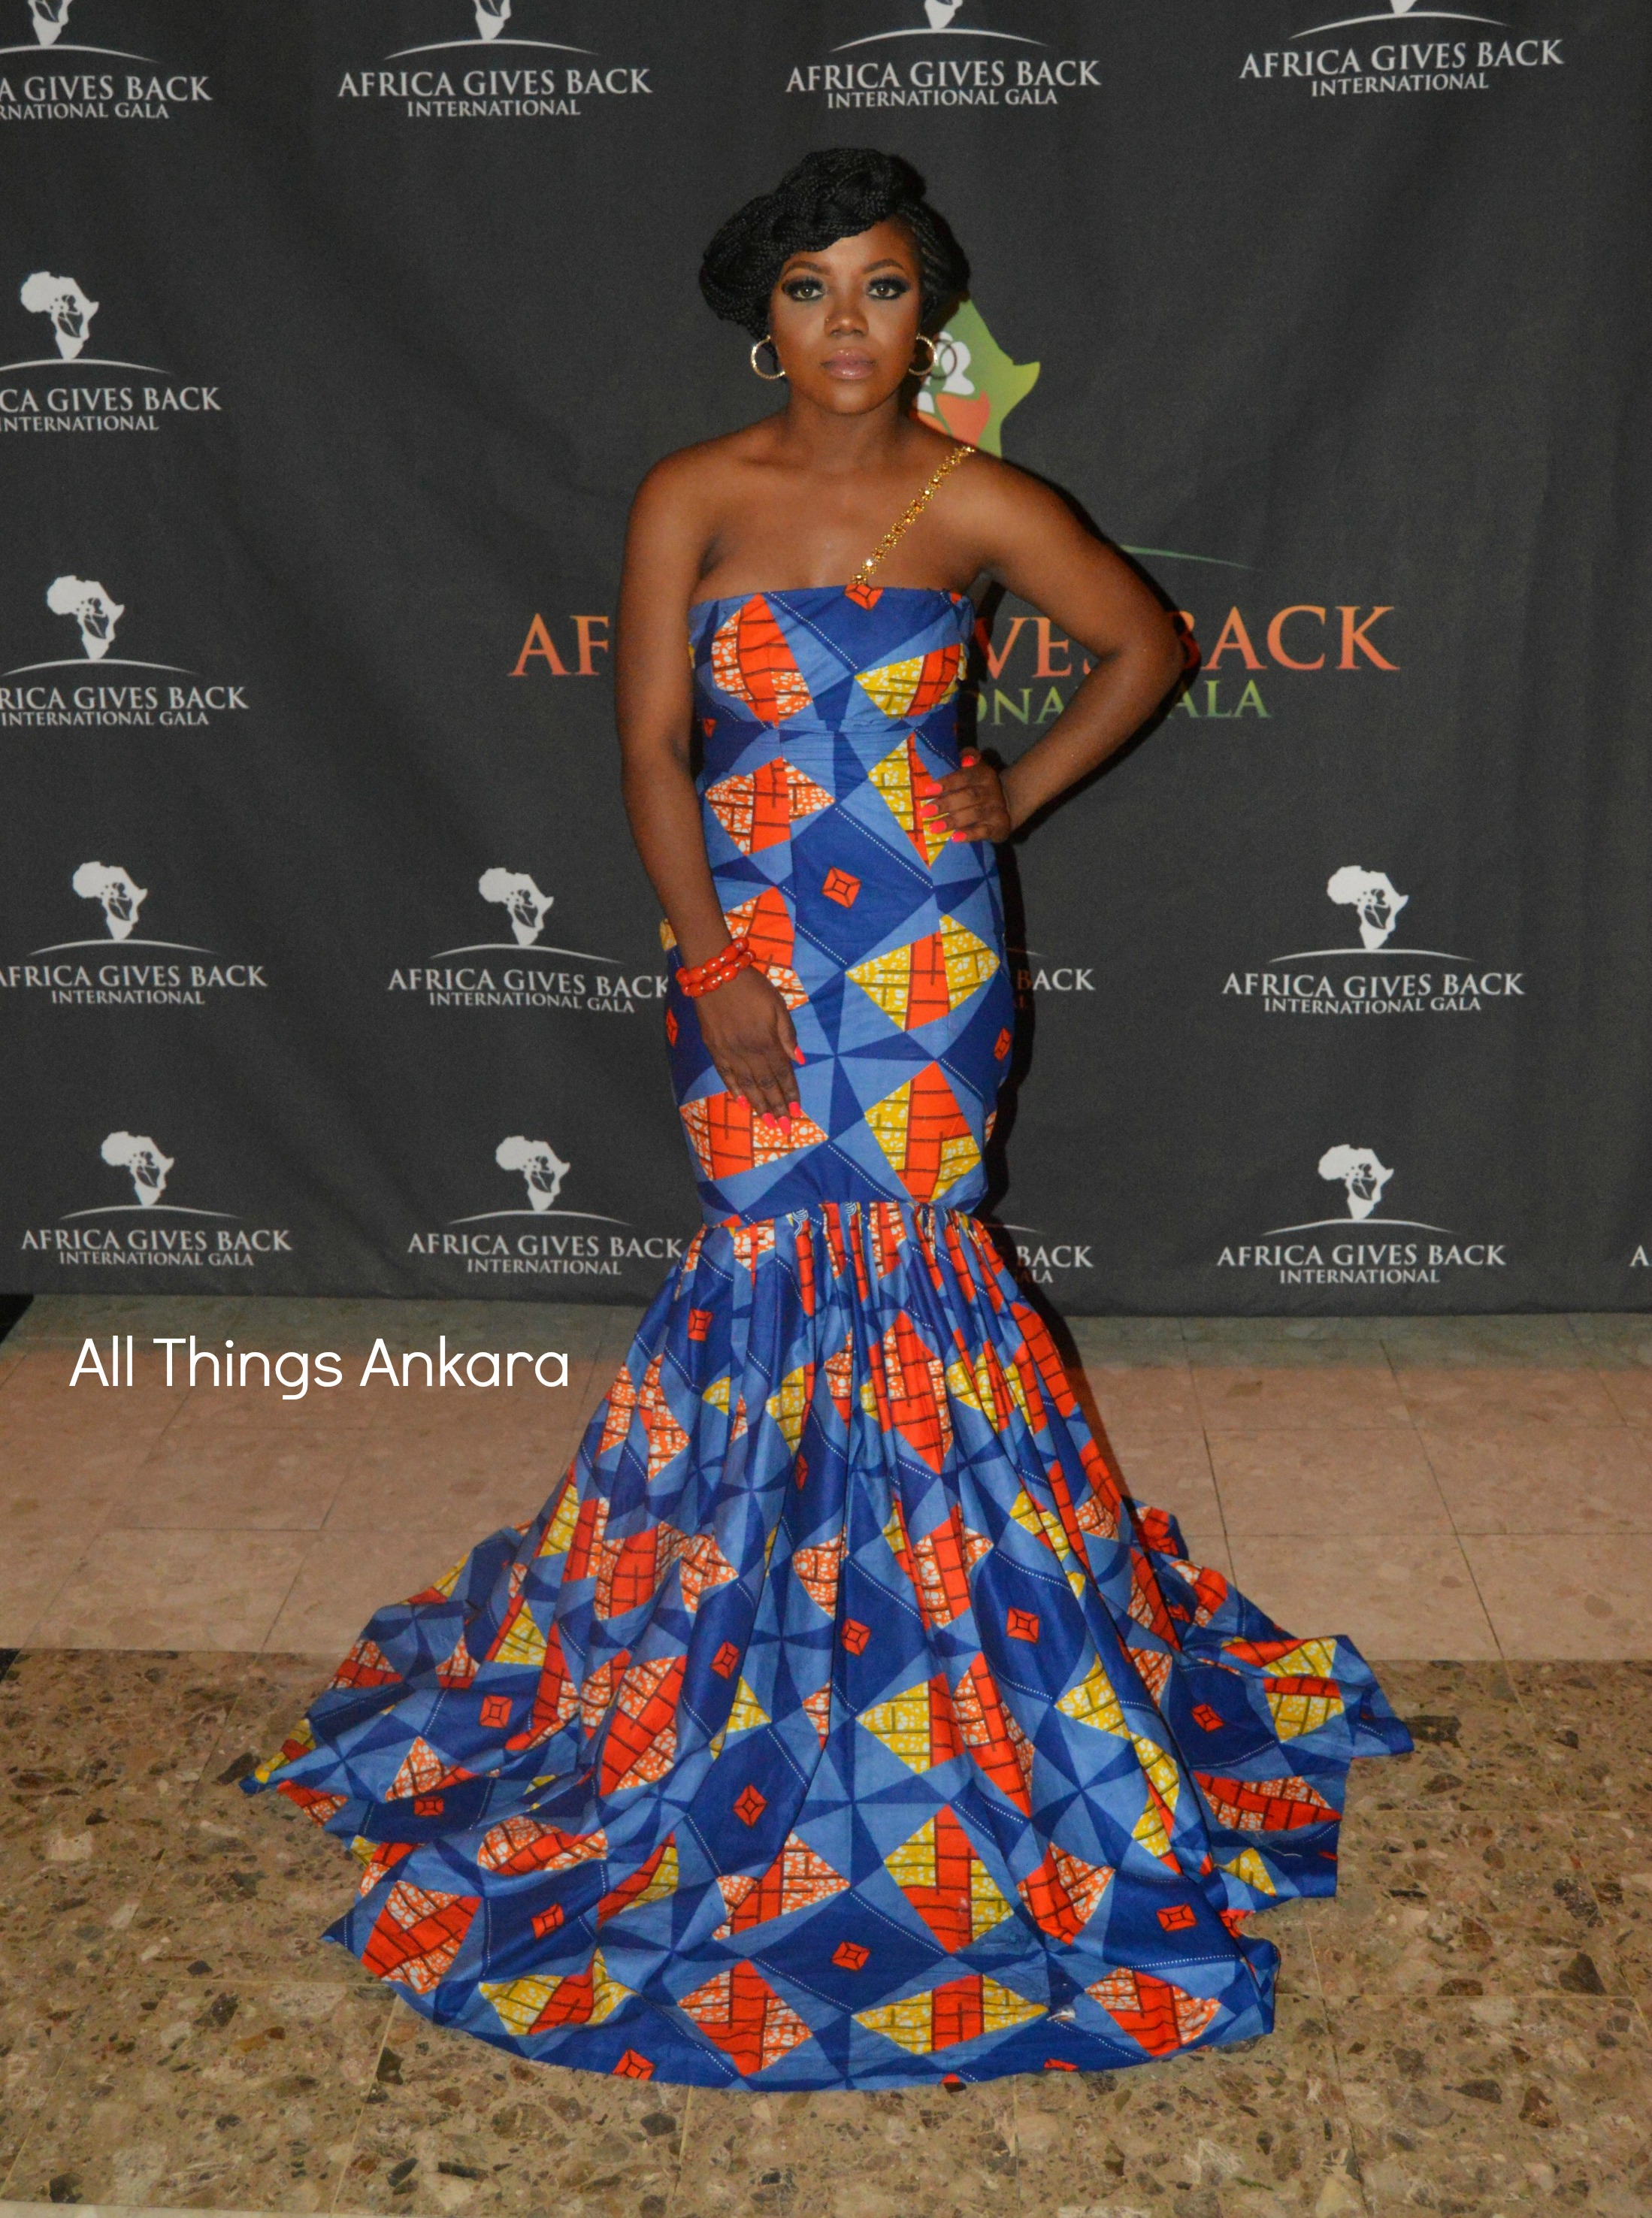 Gala-All Things Ankara's Best Dressed Women at Africa Gives Back International Gala 2016 14